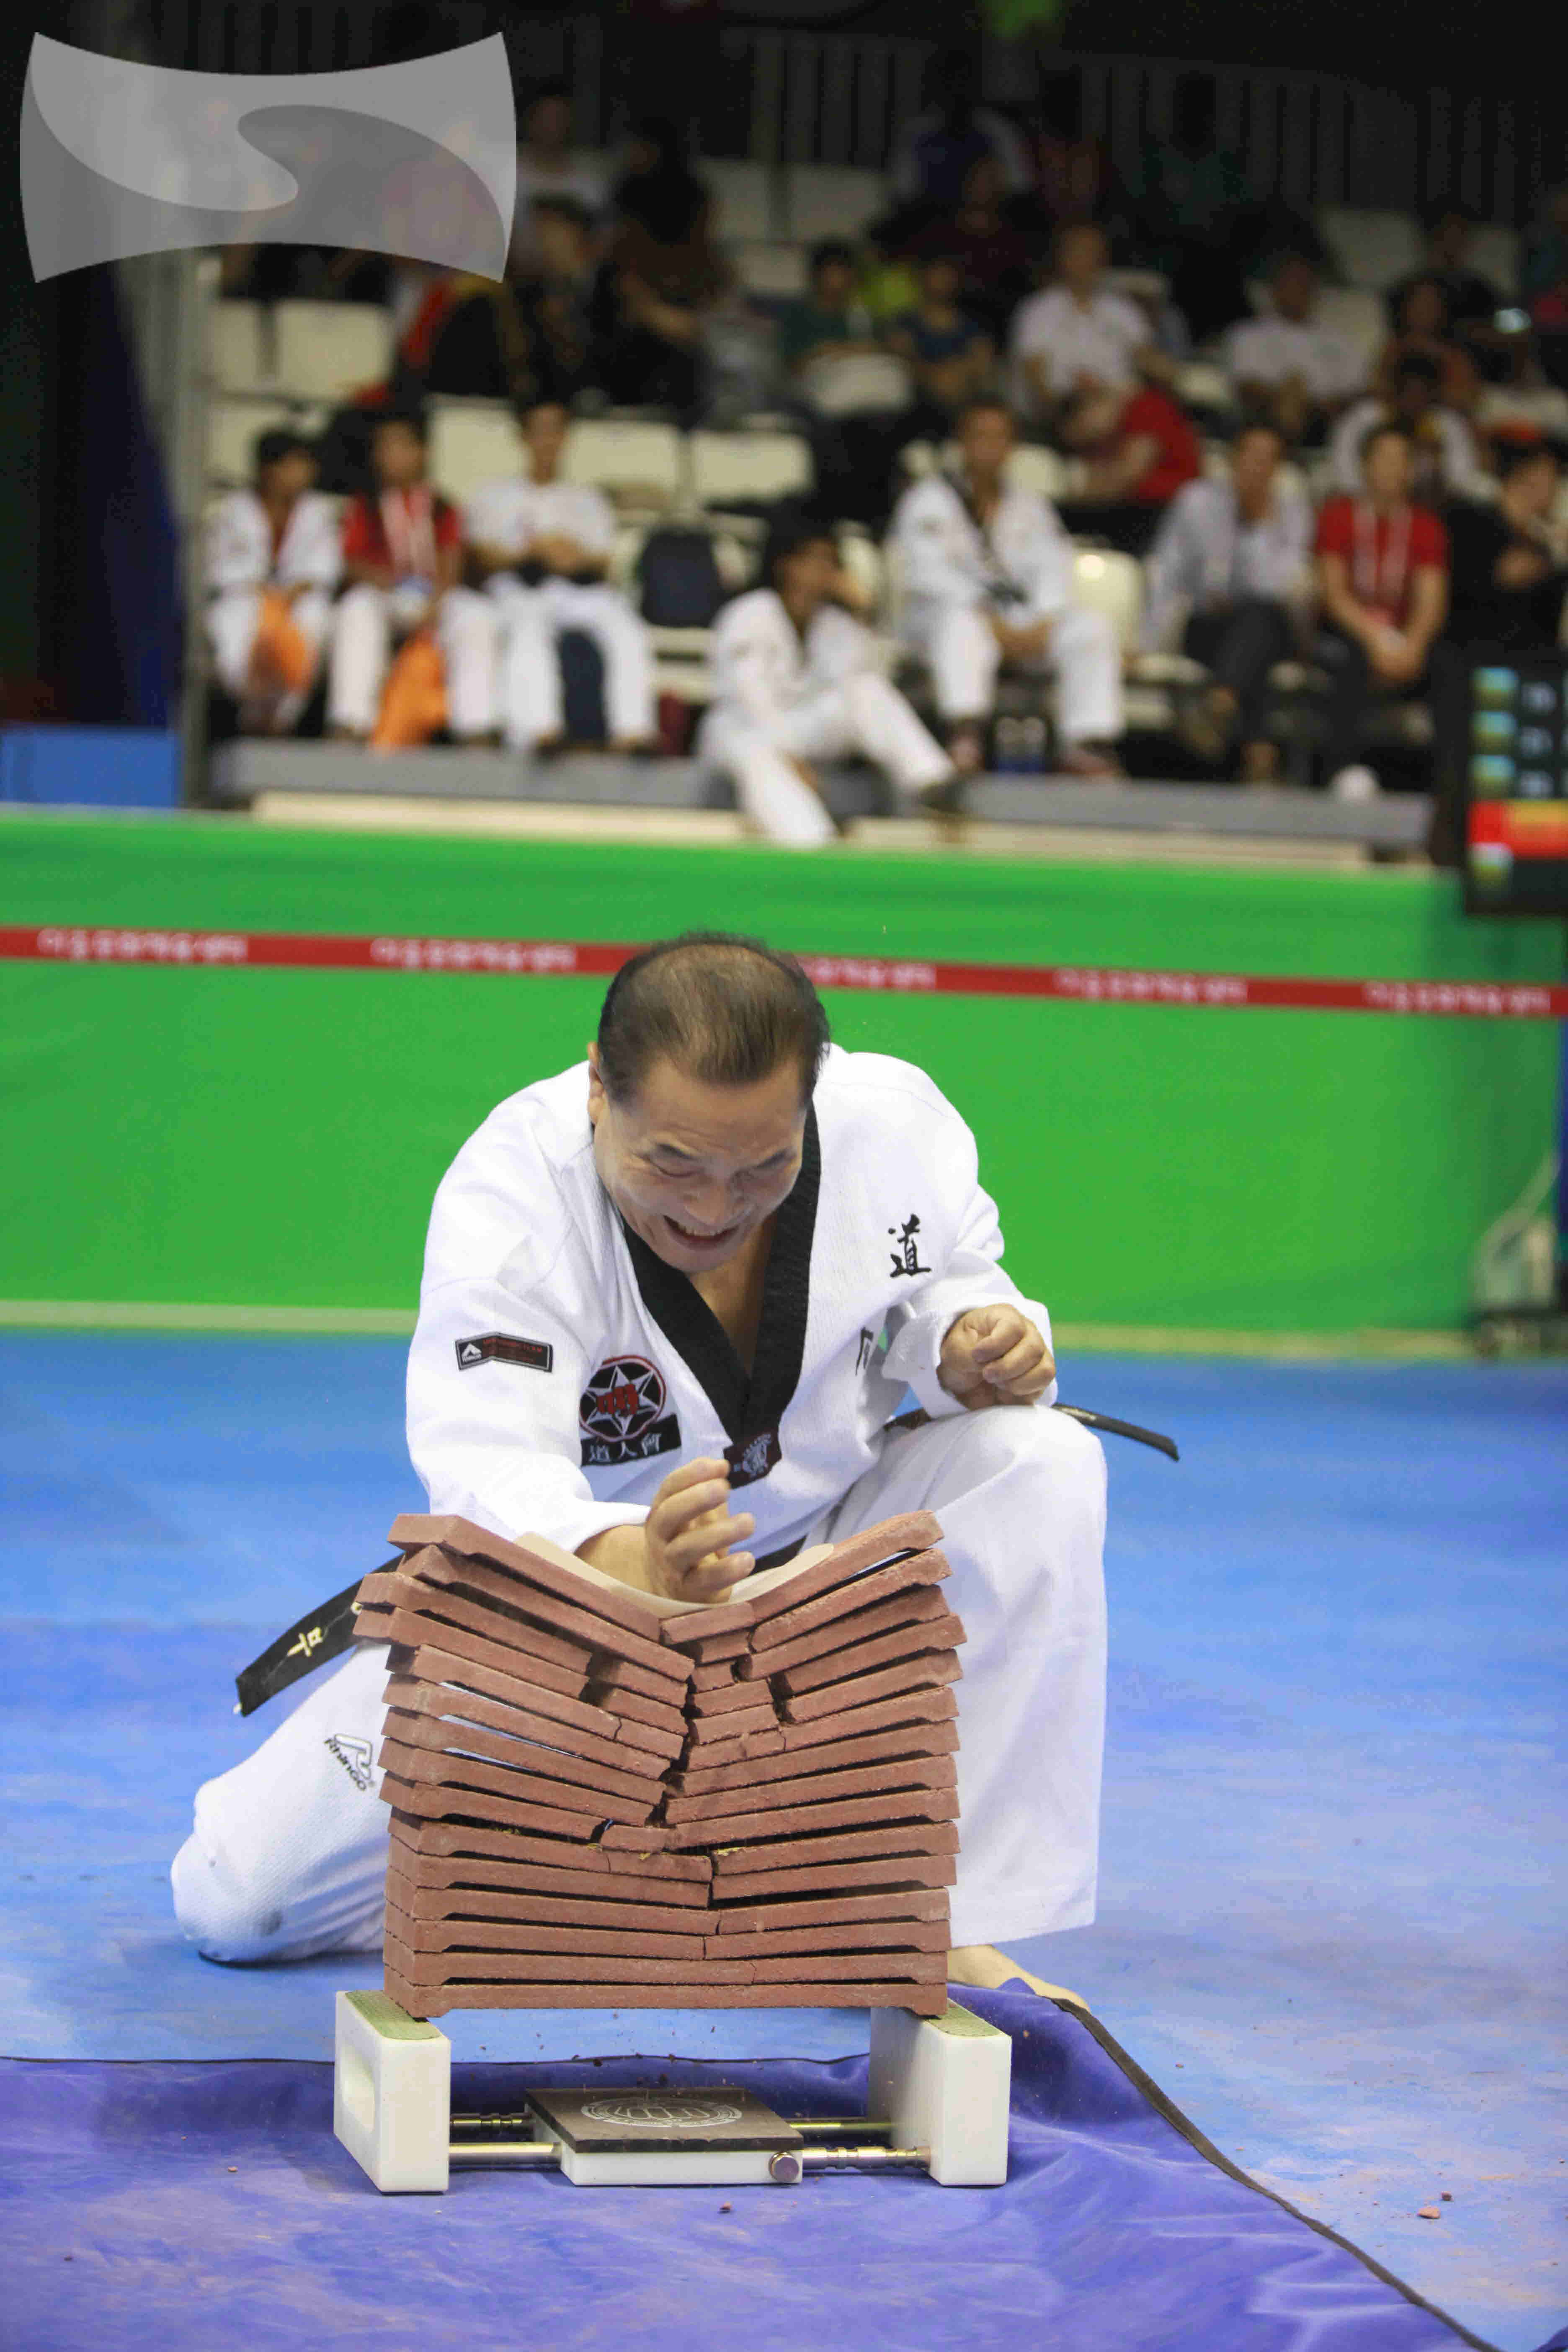 2015 World Taekwondo Hanmadang Knife Hand Breaking